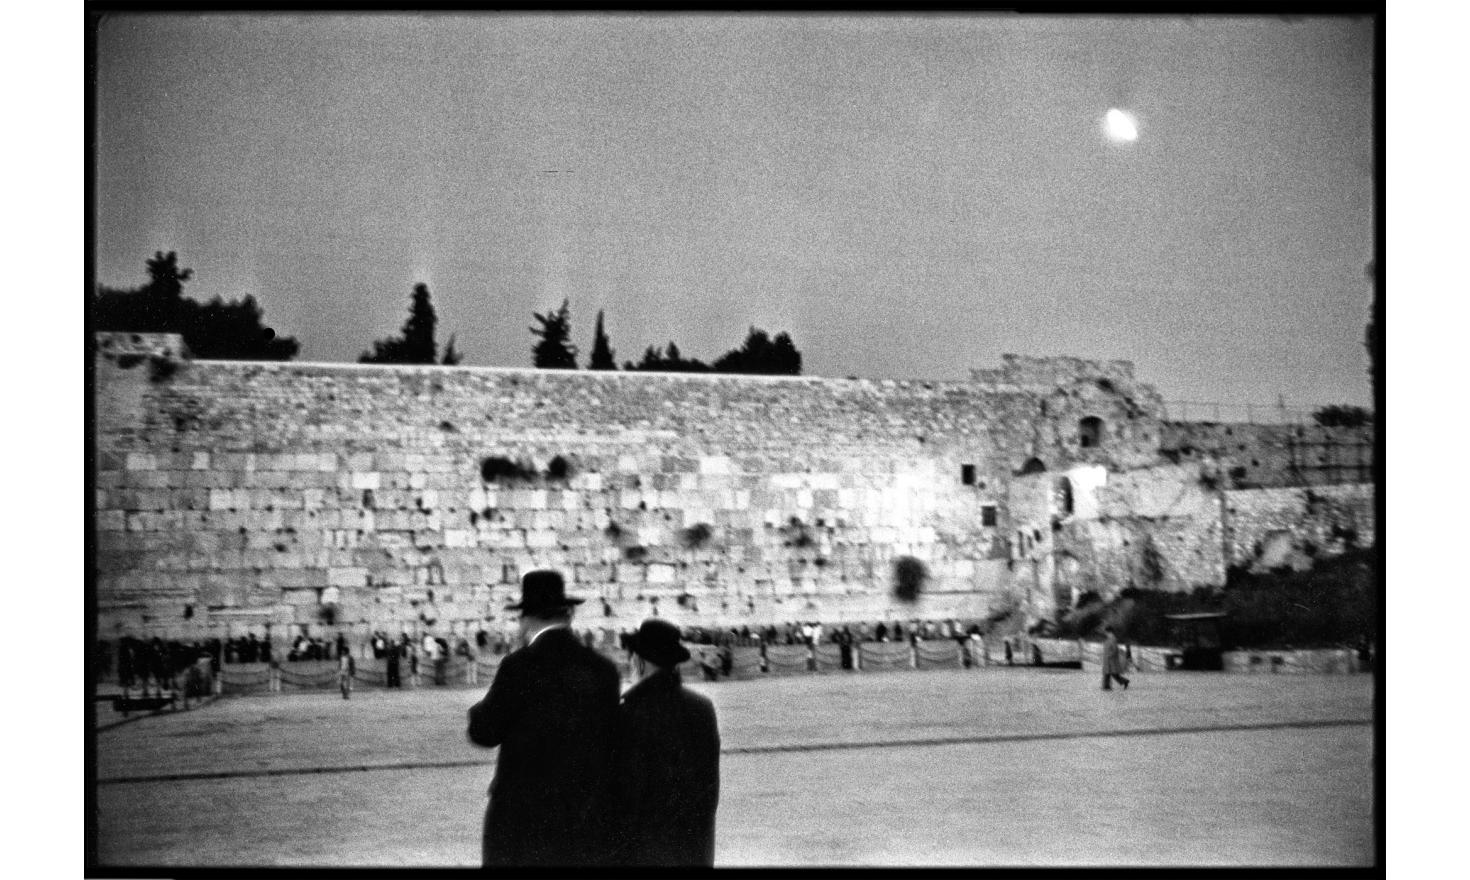 Wailing wall, Jerusalem. April 1982